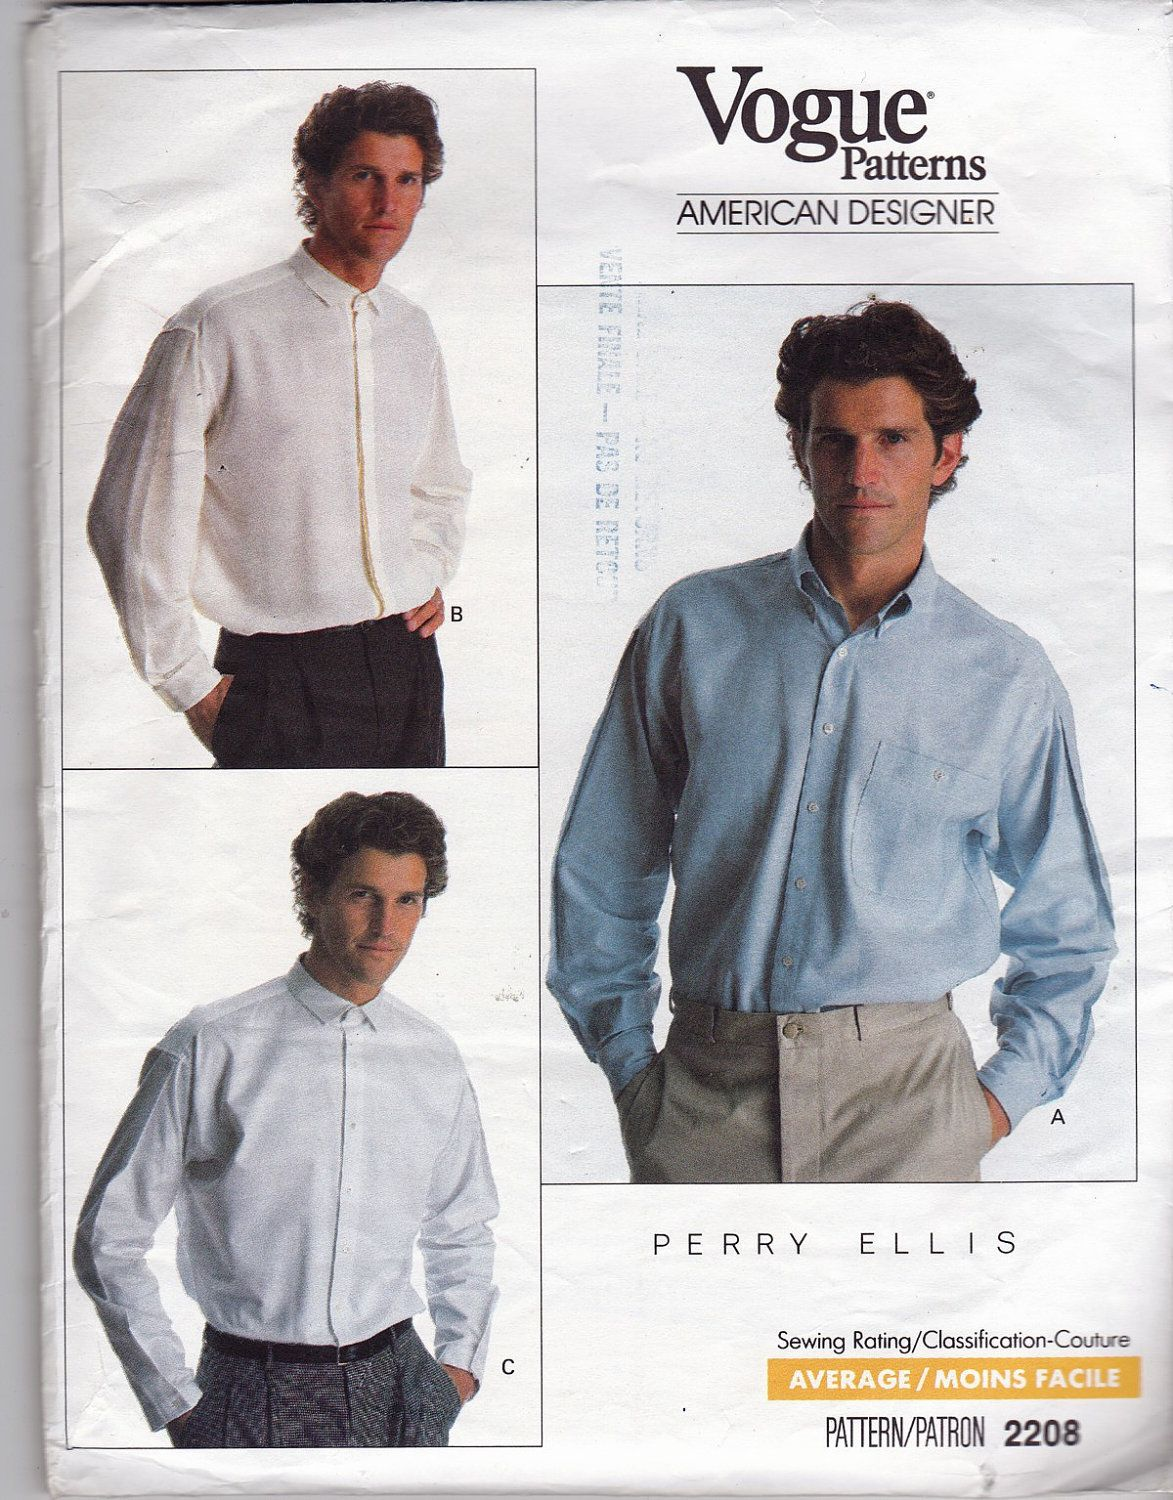 Vogue pattern 2208 perry ellis american designer mens man shirt items similar to vogue american designer 2208 perry ellis loose fitting classic shirt uncut factory folded sewing pattern size on etsy jeuxipadfo Images